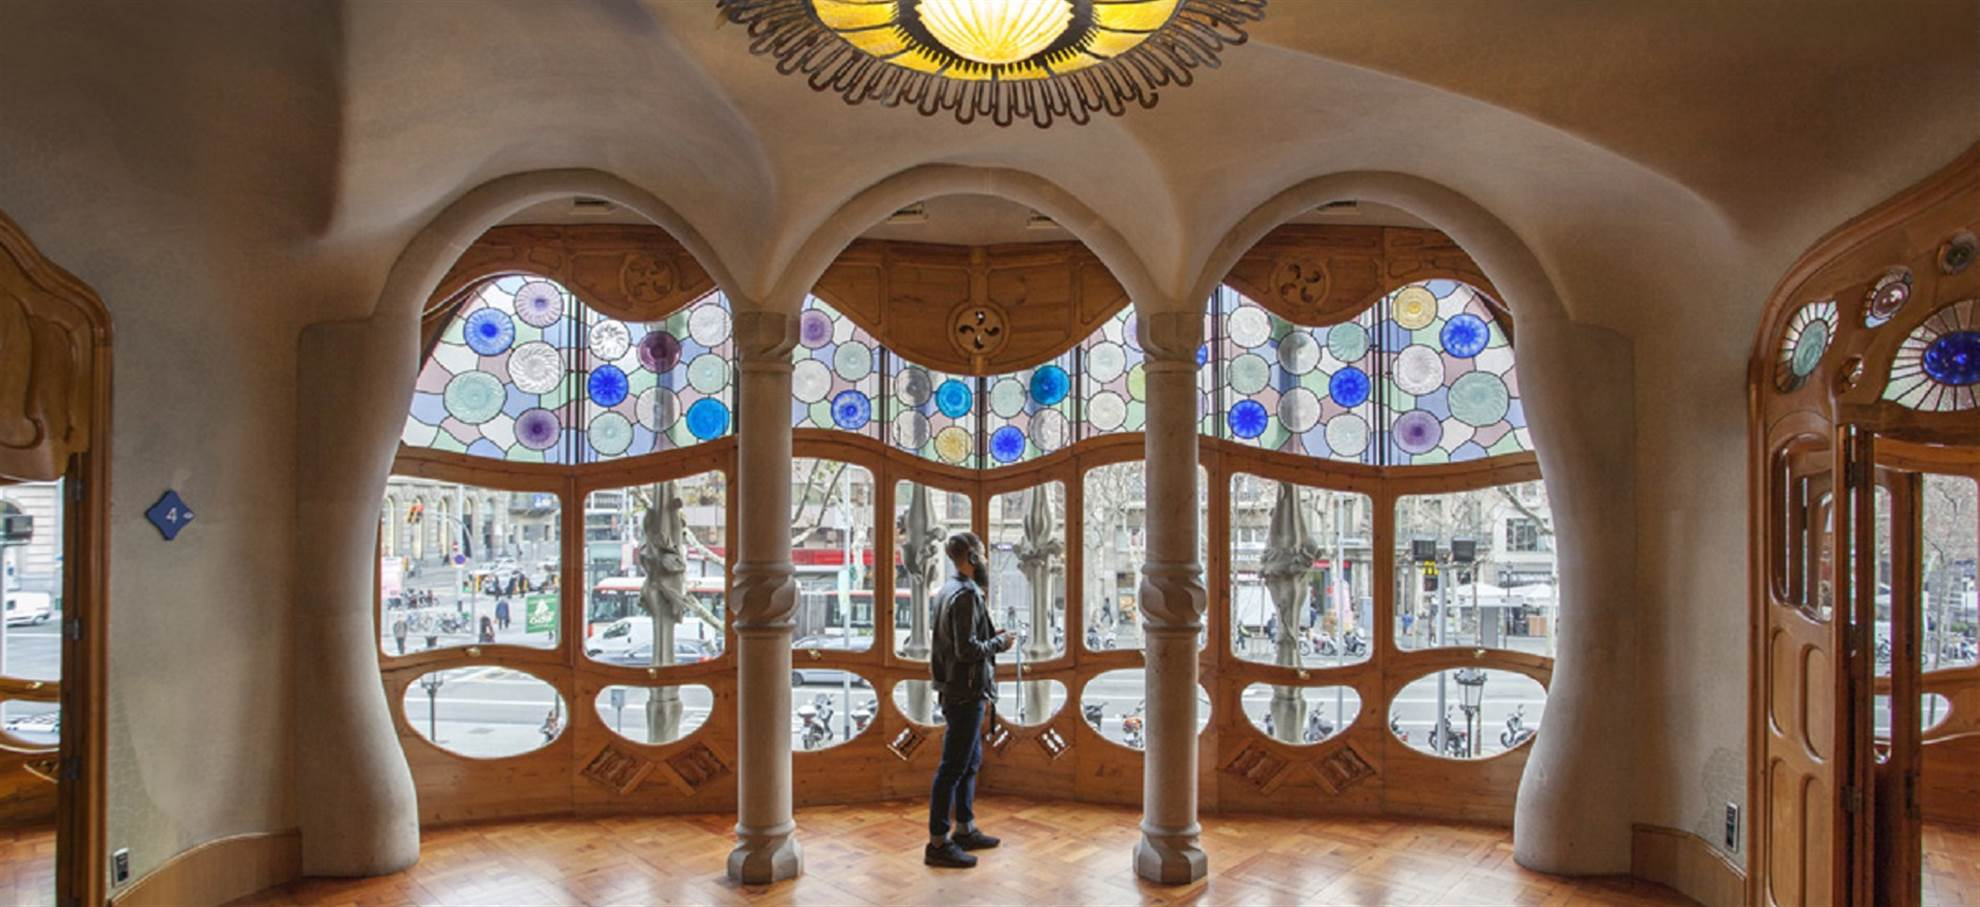 Casa Batlló - Be the first!